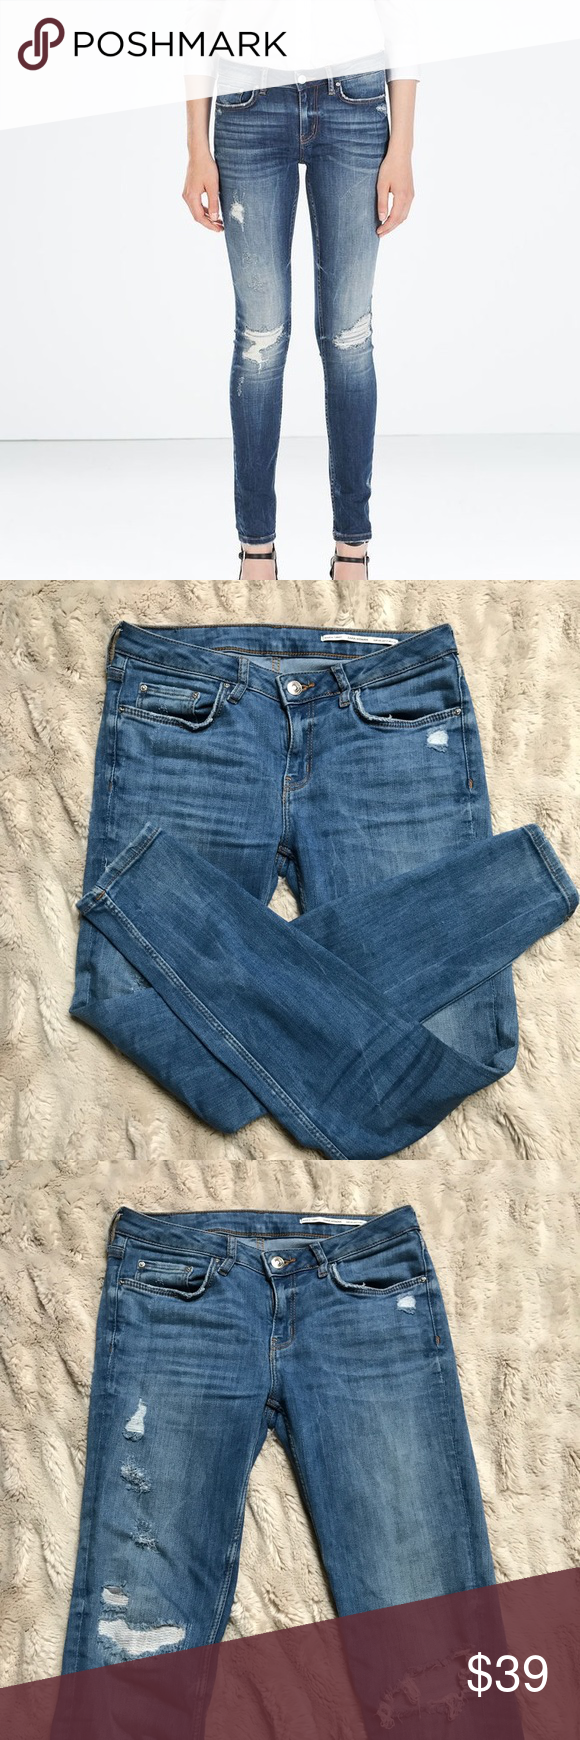 f5466325 ZARA Premium Denim Distressed Skinny Jeans ZARA Premium Denim distressed  skinny jeans. Pre-loved